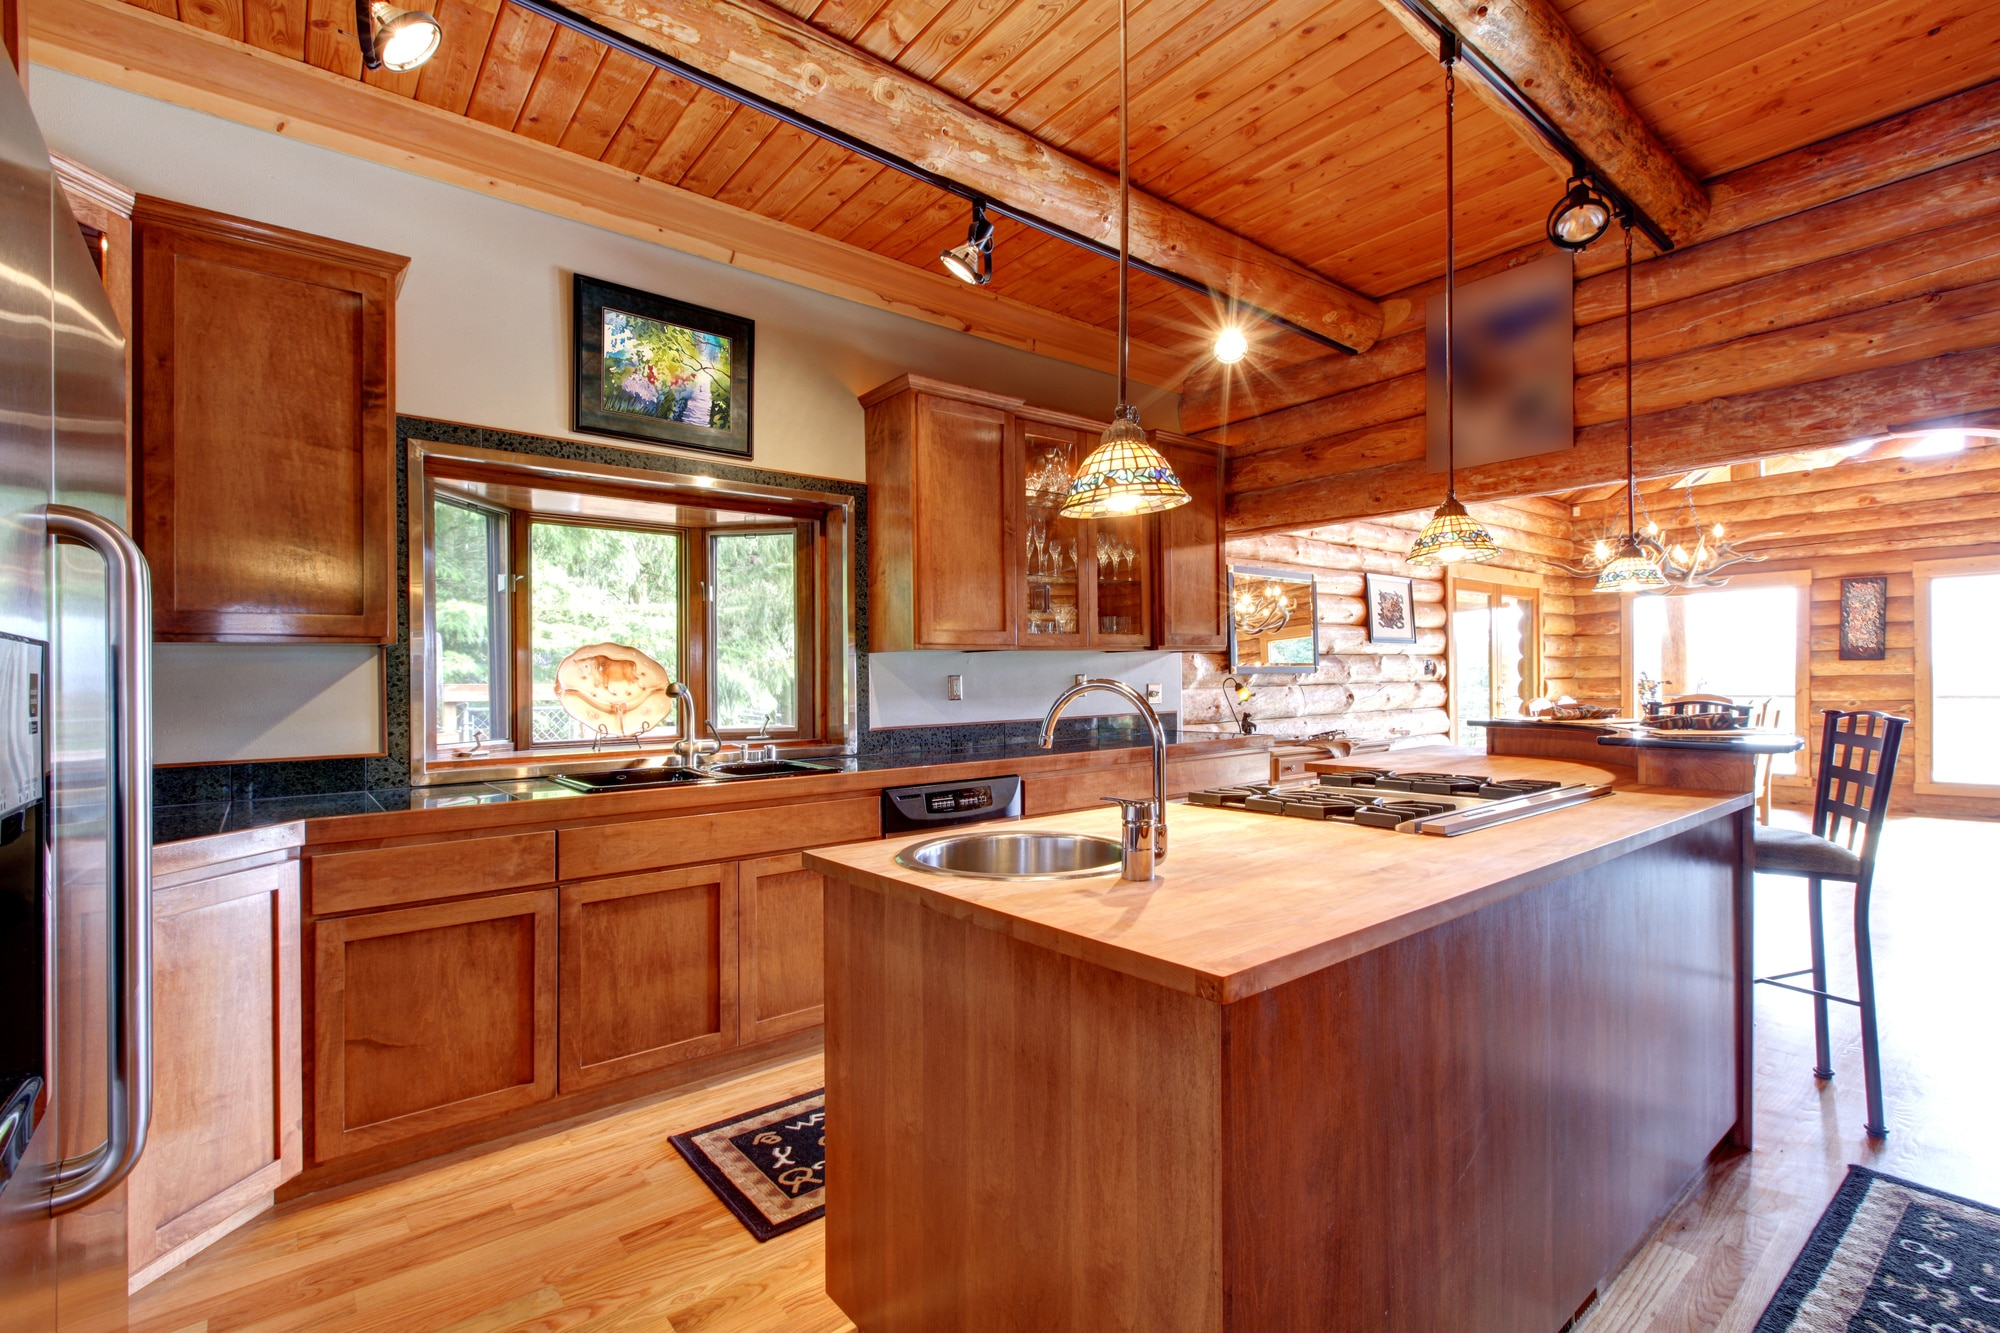 The Ultimate Guide to Craftsman Kitchen Design - Let's Remodel on house plans with glass walls, house plans with luxury kitchens, house plans with french doors, house plans with walk-in closets, house plans with garage, house plans with fireplaces, house plans with dining room, house plans with bedrooms, house plans with patio doors, house plans with vaulted ceilings, house plans with decks,